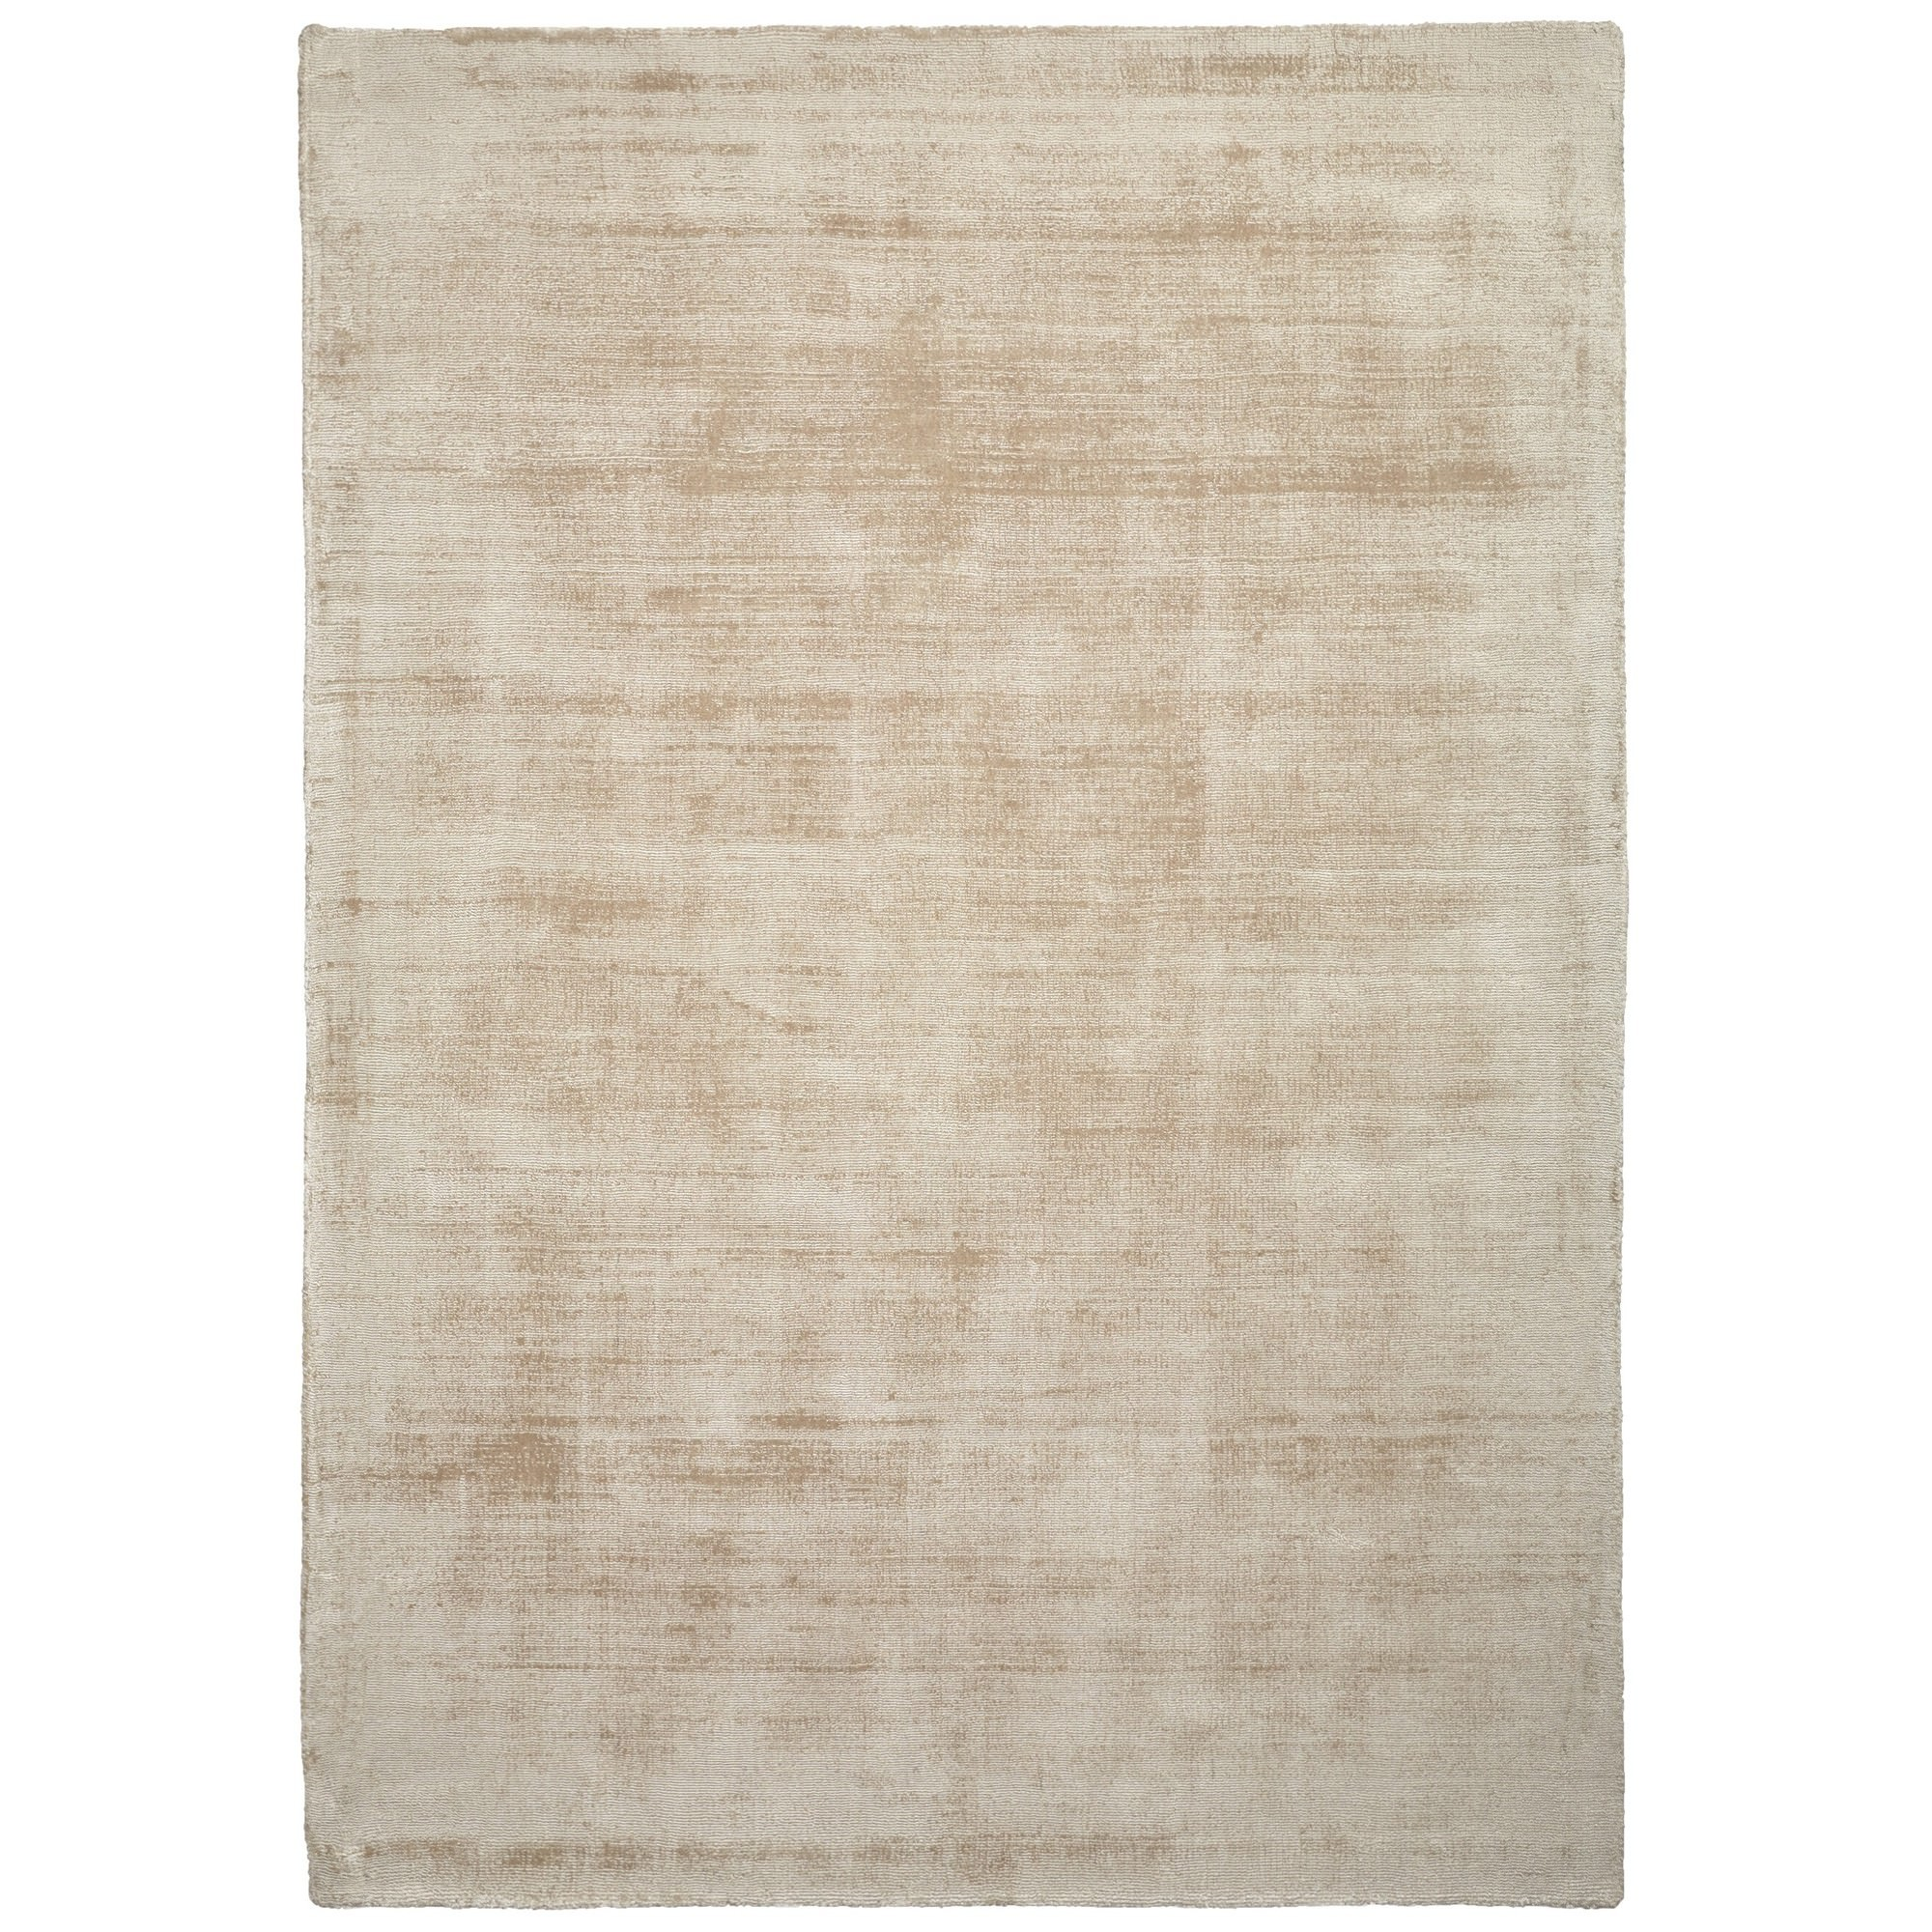 Luxe Modern Rug, 290x200cm, Pearl